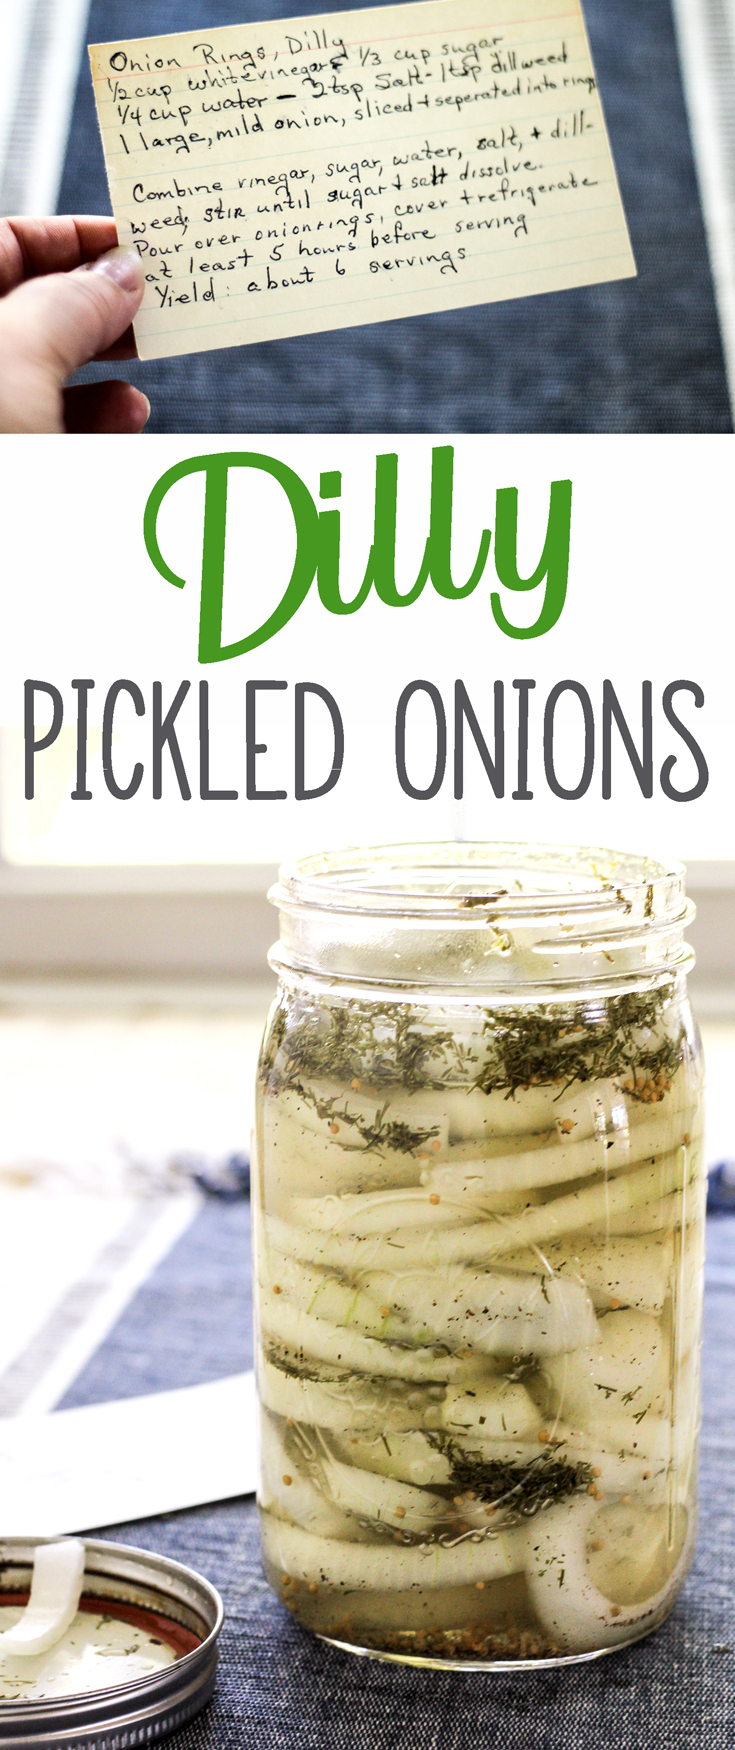 A Southern kitchen is not complete without pickles like our family recipe for Dilly Pickled Onion Rings. Dump all into a jar, shake, put it in the fridge. #pickledonion, #easypickle